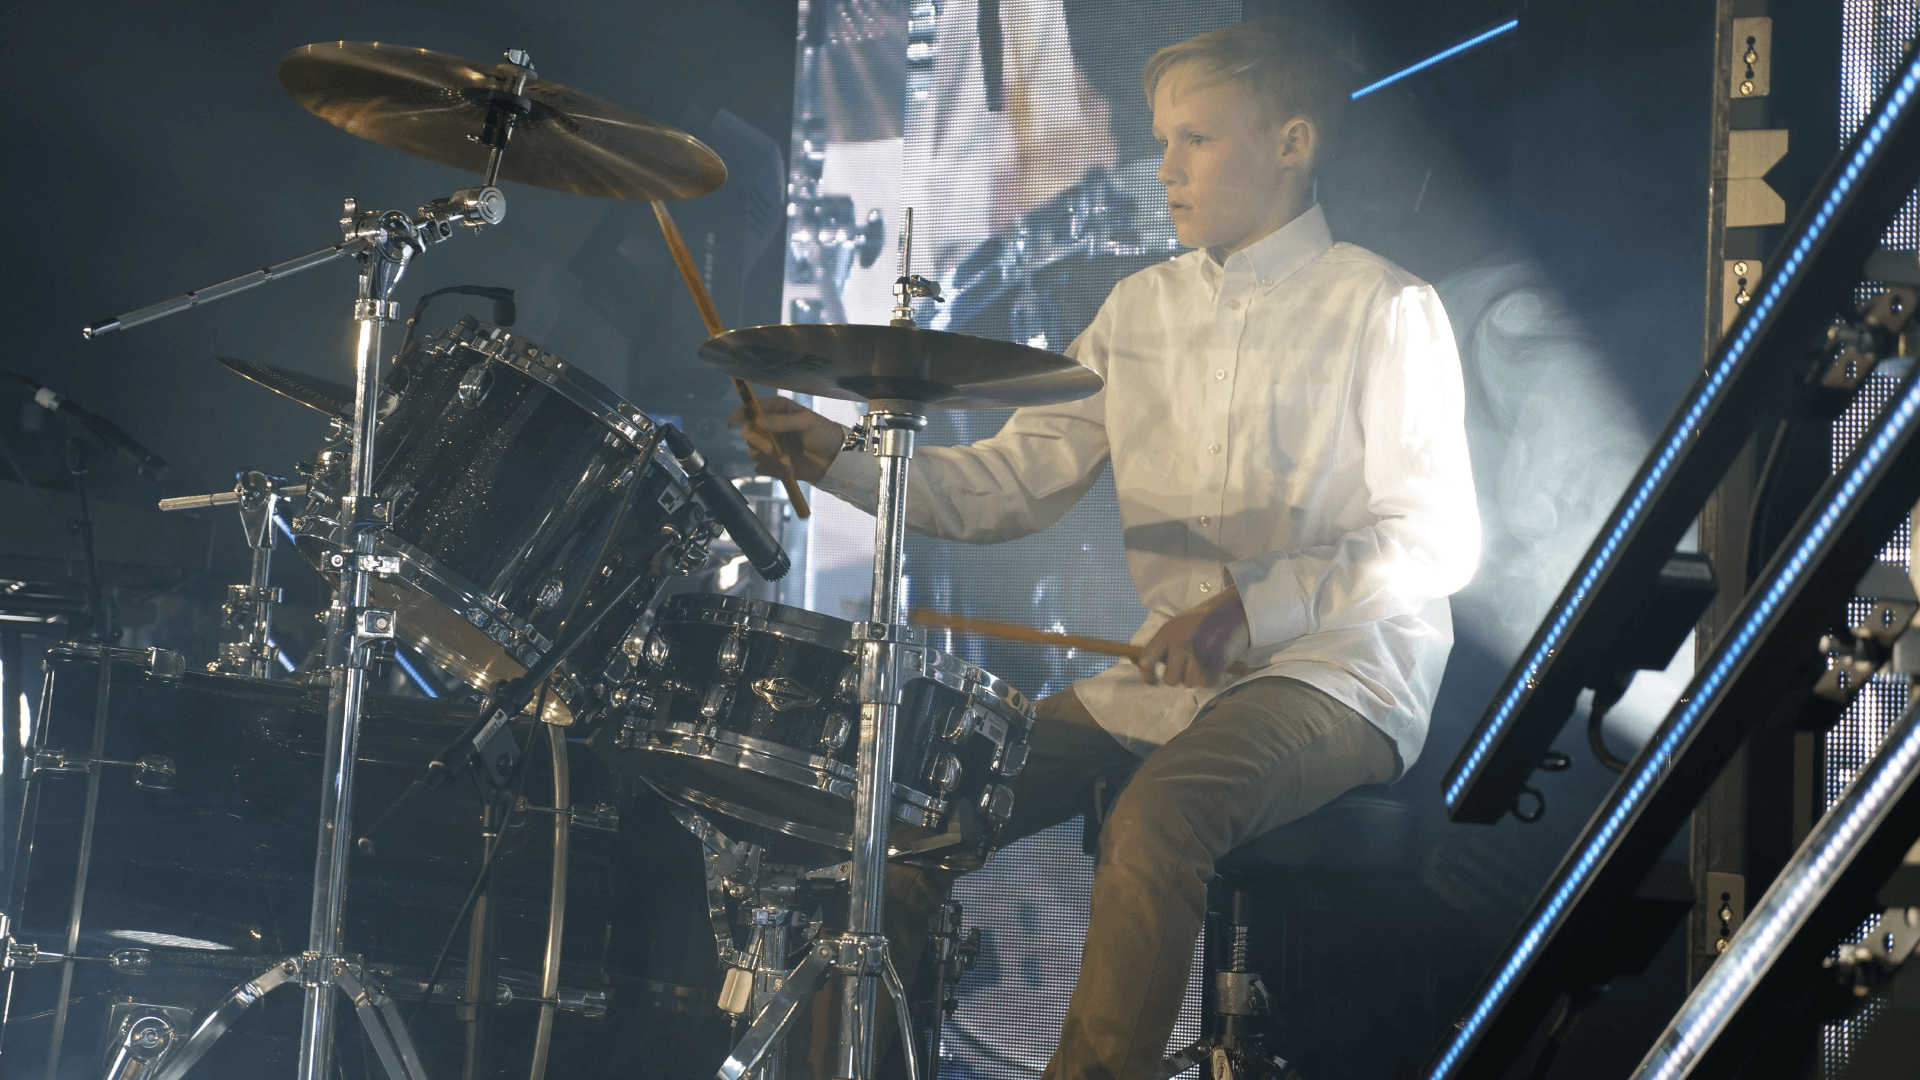 Learn to play the drums in Reno,NV - JamPro Music Factory